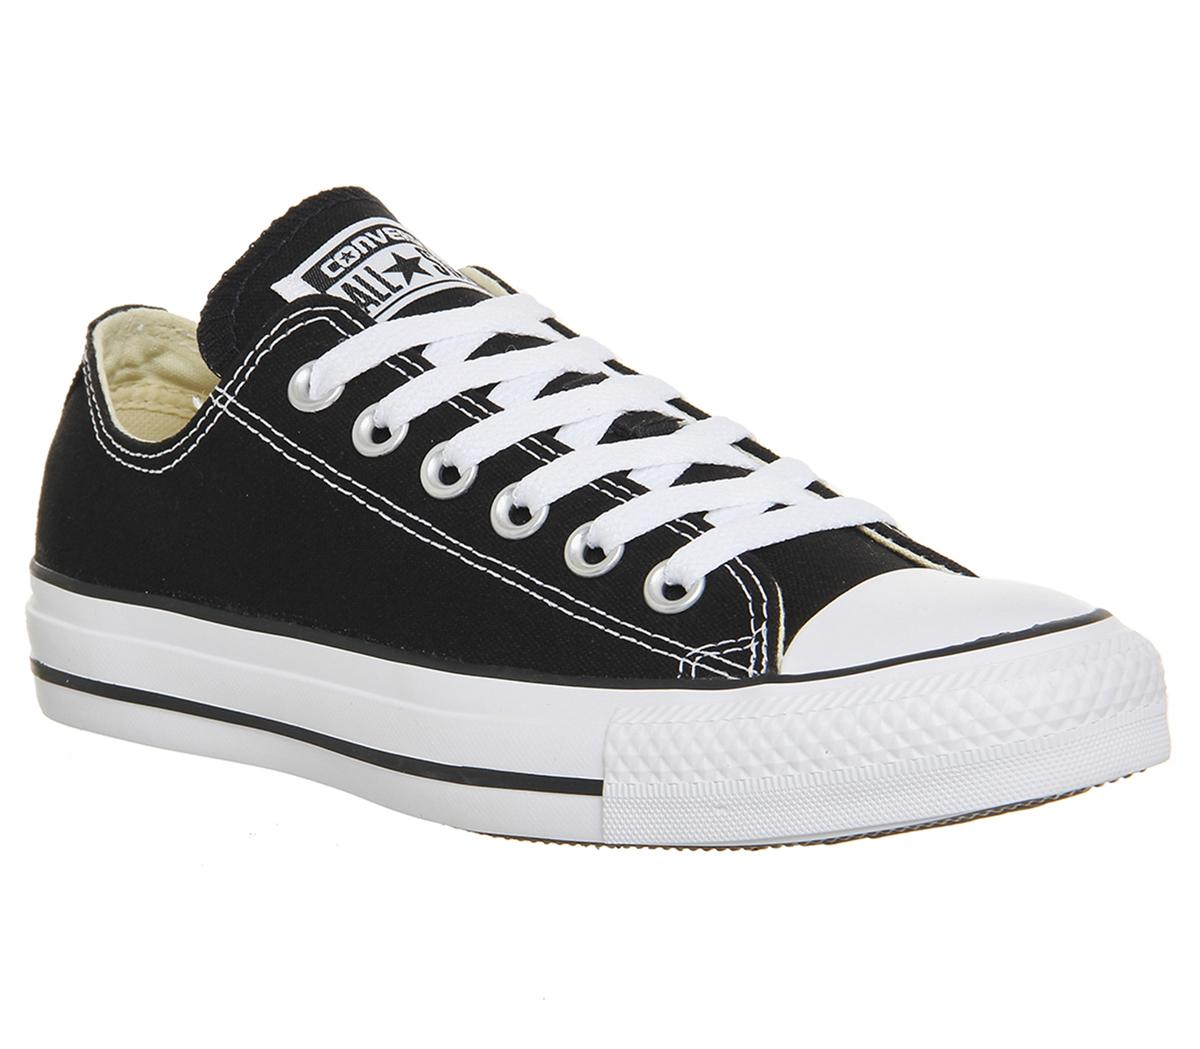 2converse all star low